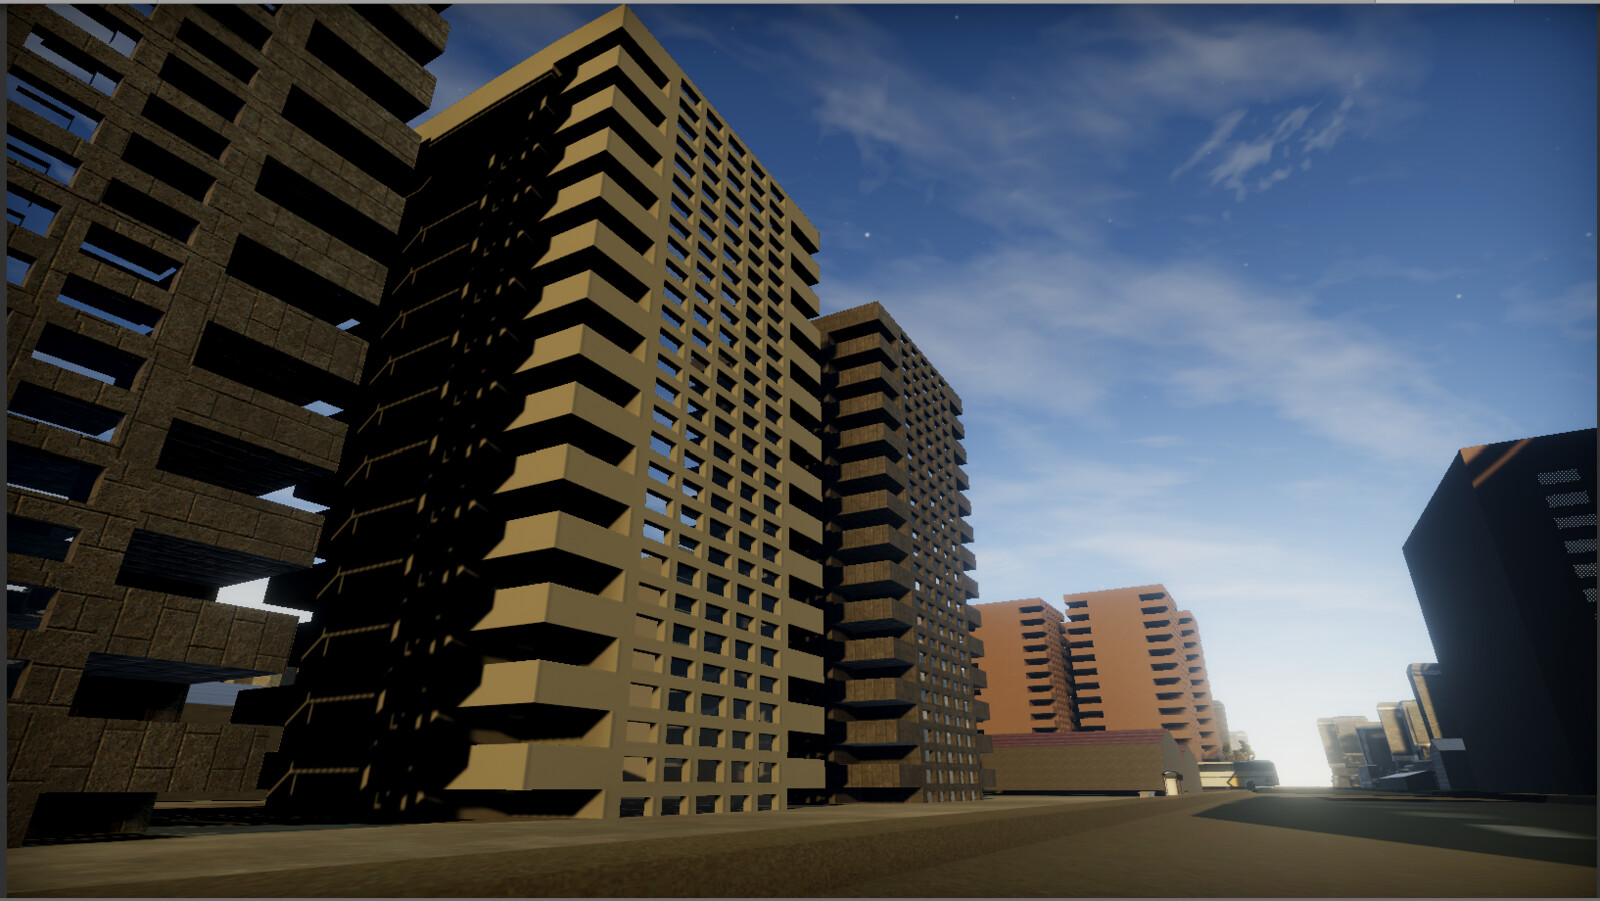 View from the streets of sme of the buildings in the city area -Unity screenshot.